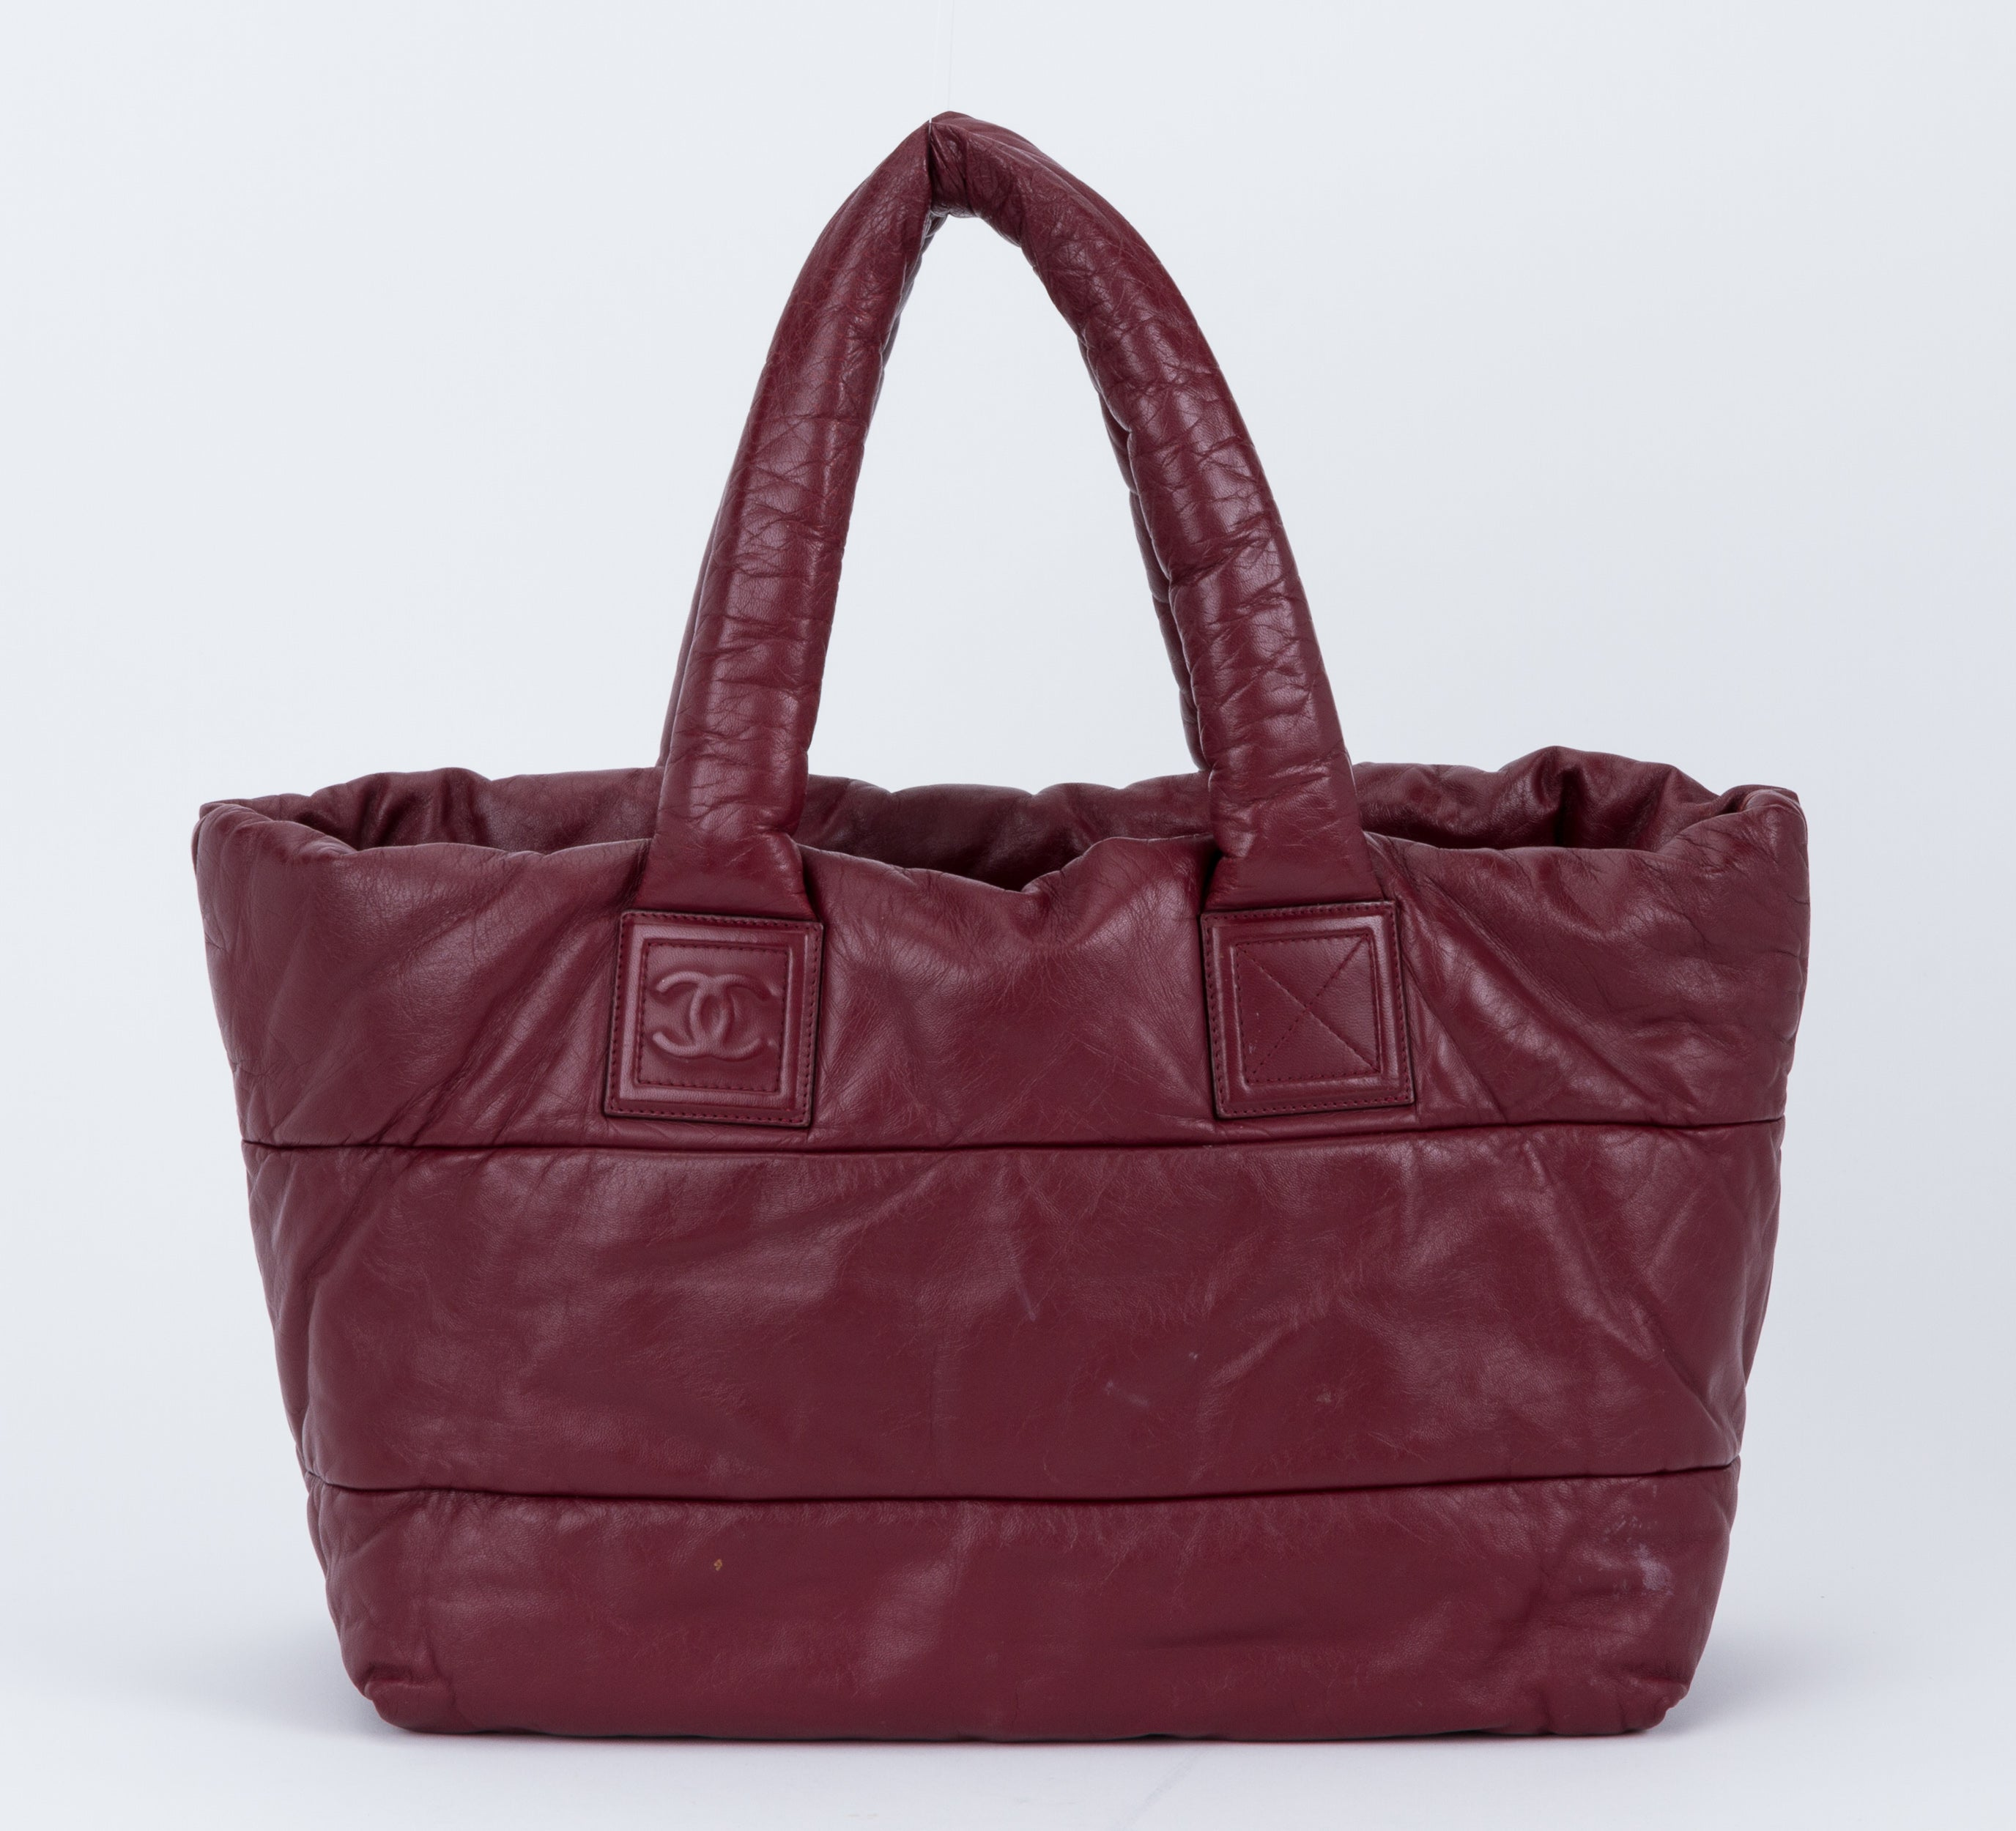 fe00597bfa94 Chanel Burgundy Leather Coco Cocoon Bag For Sale at 1stdibs